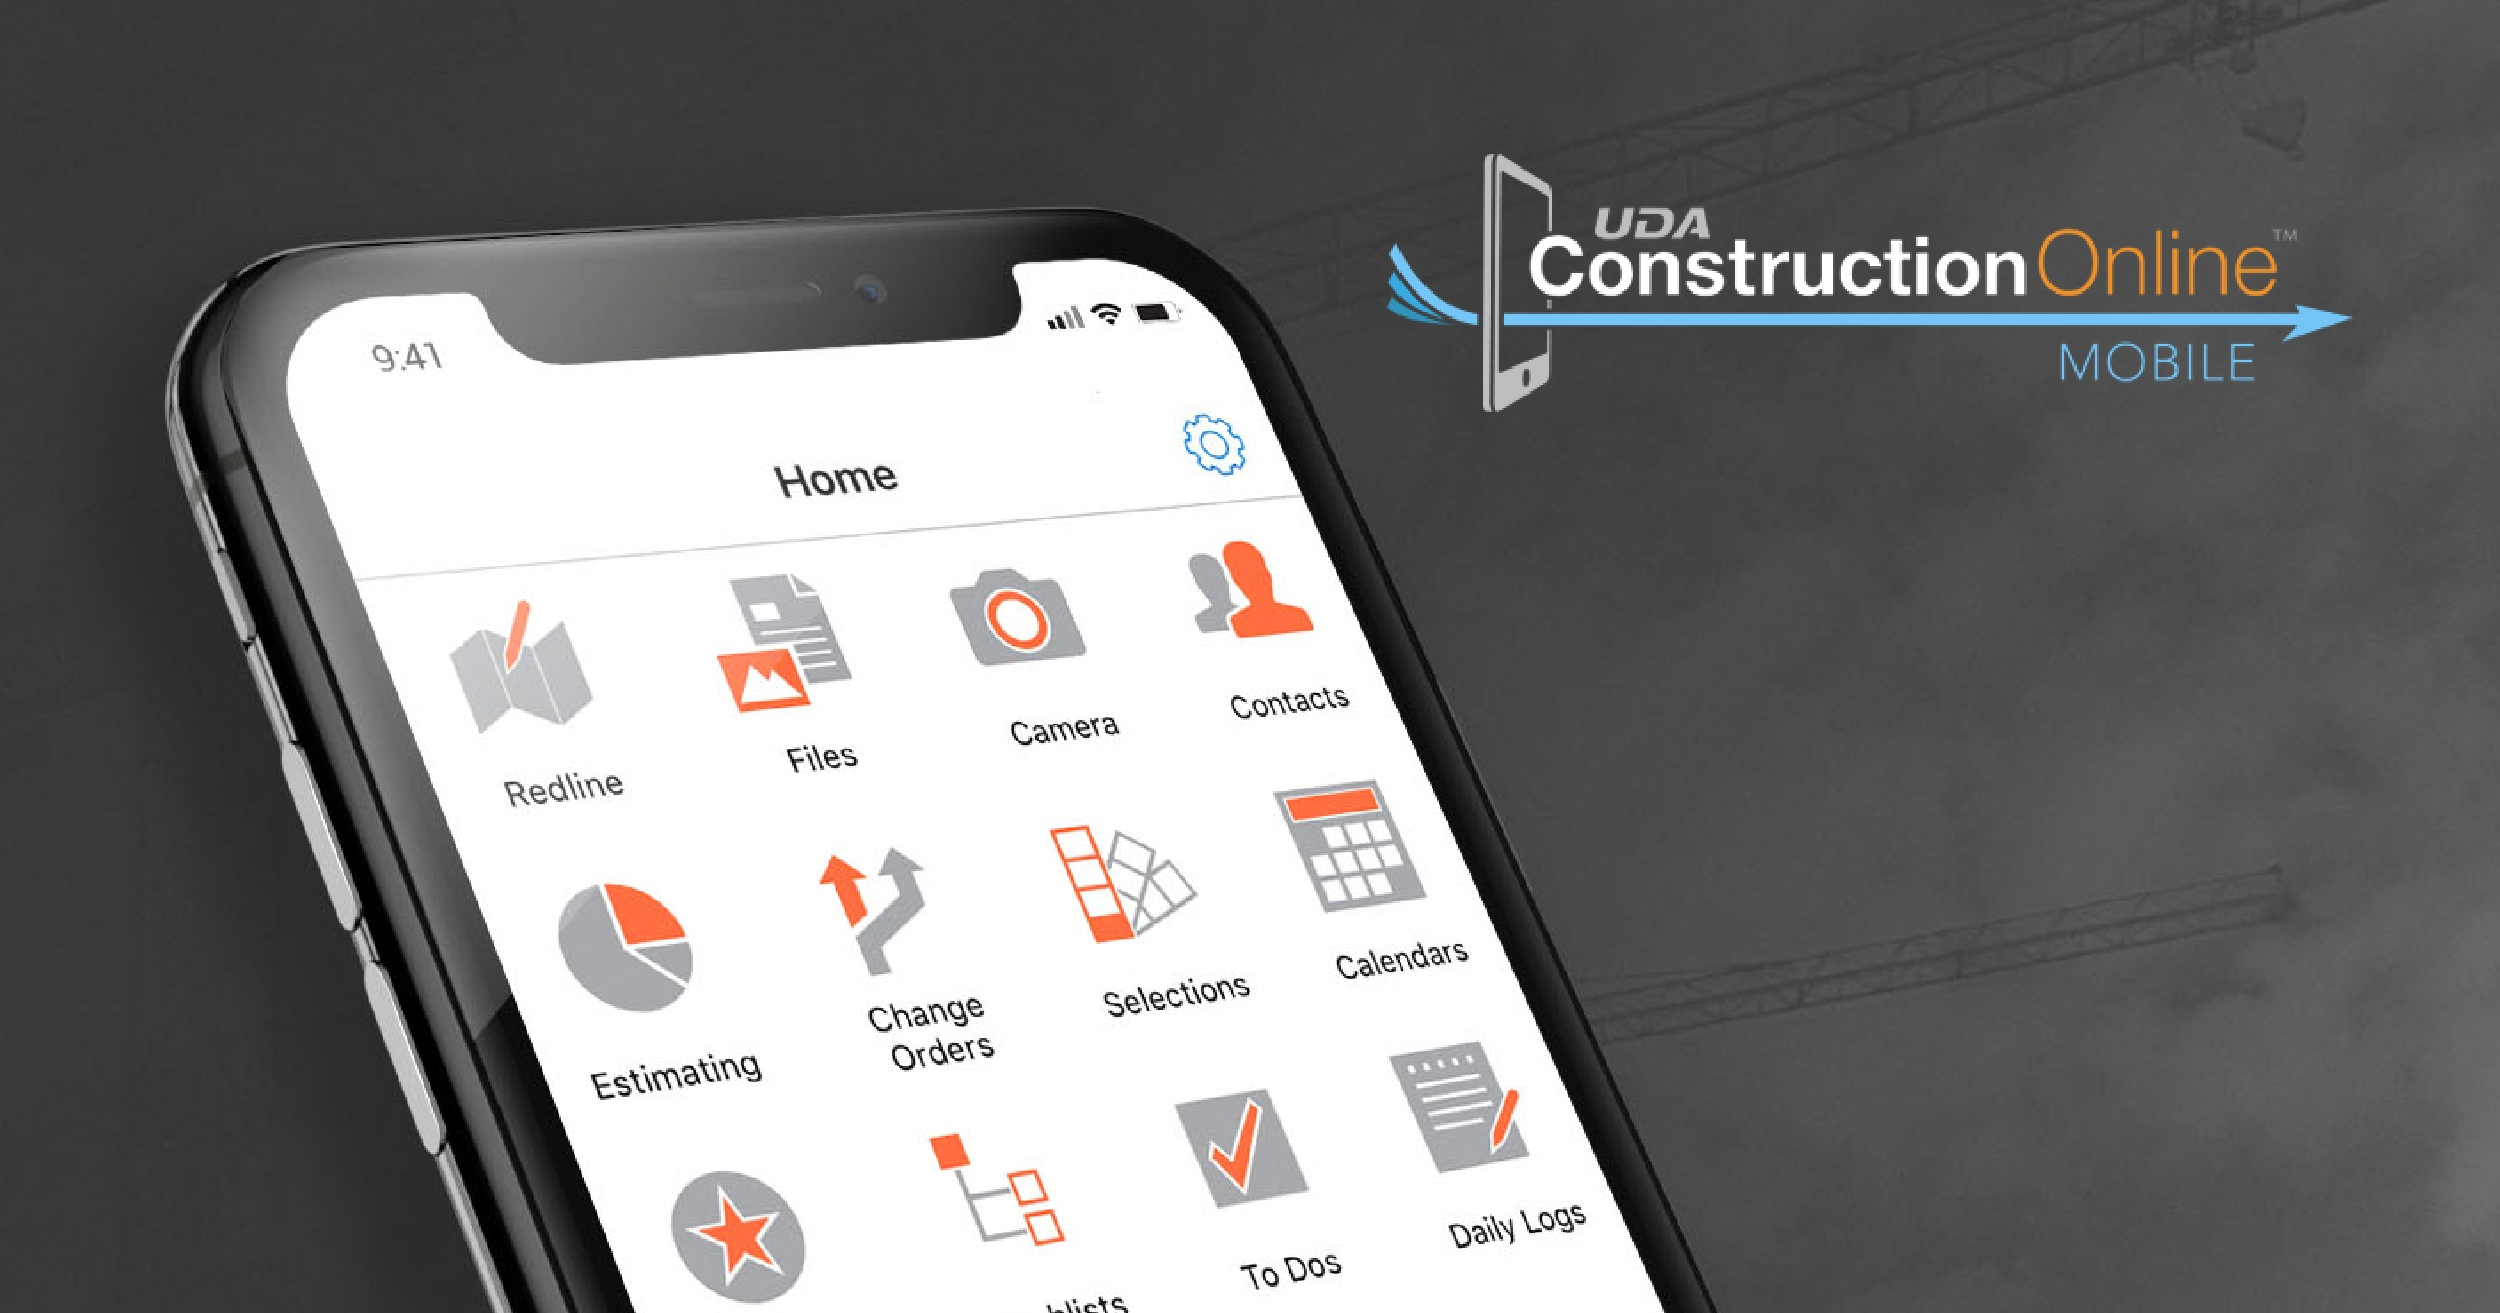 ConstructionOnline Mobile + iPhone X: The Next Generation of Project Management